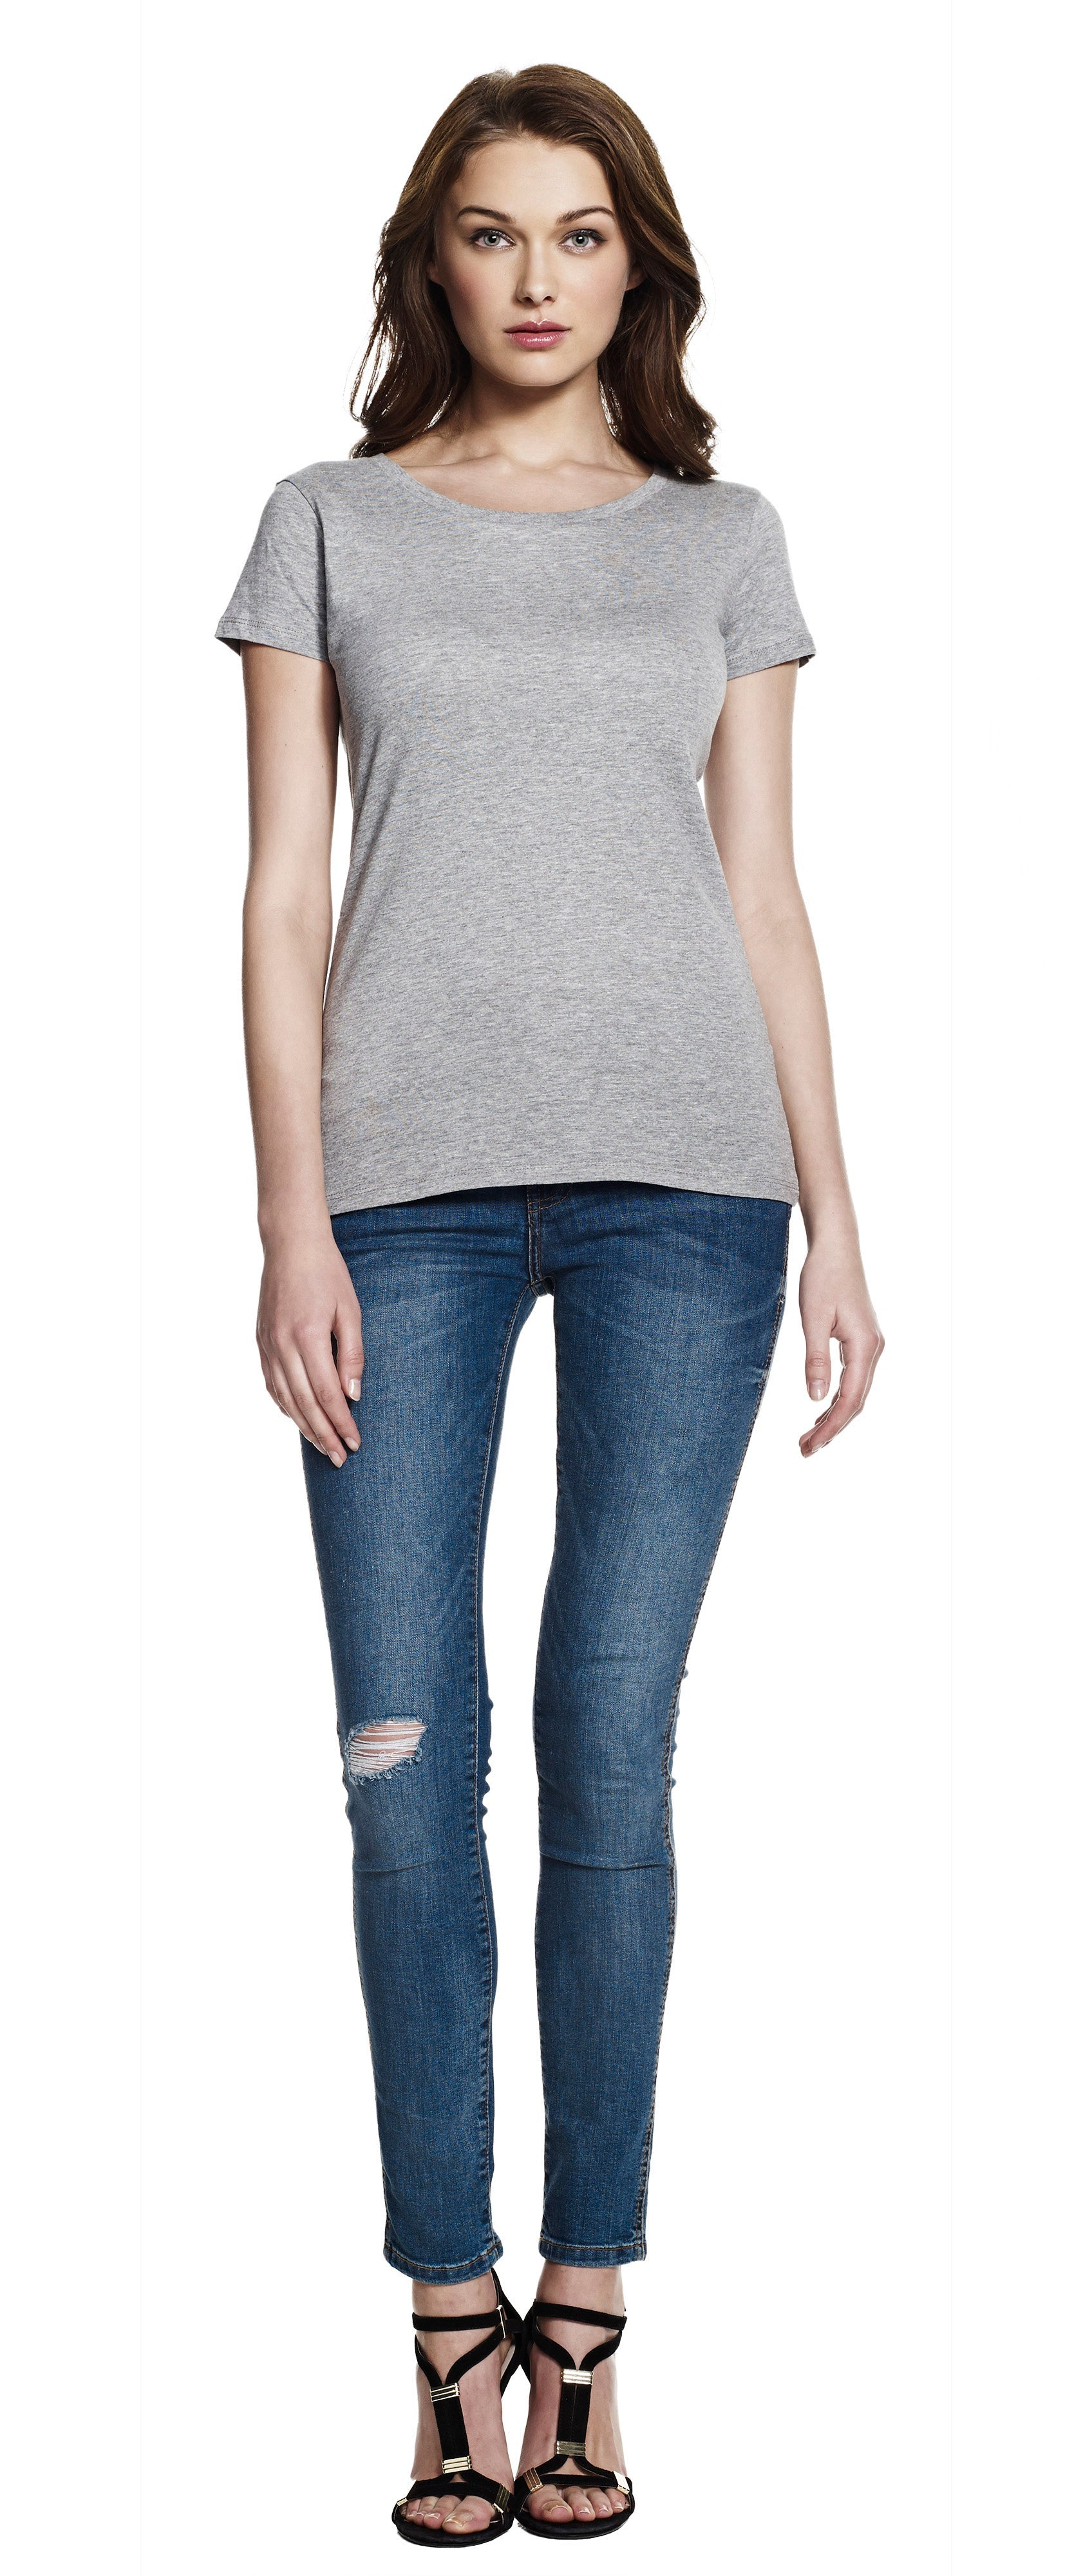 N09 | Continental Women's Regular Fitted T-Shirt